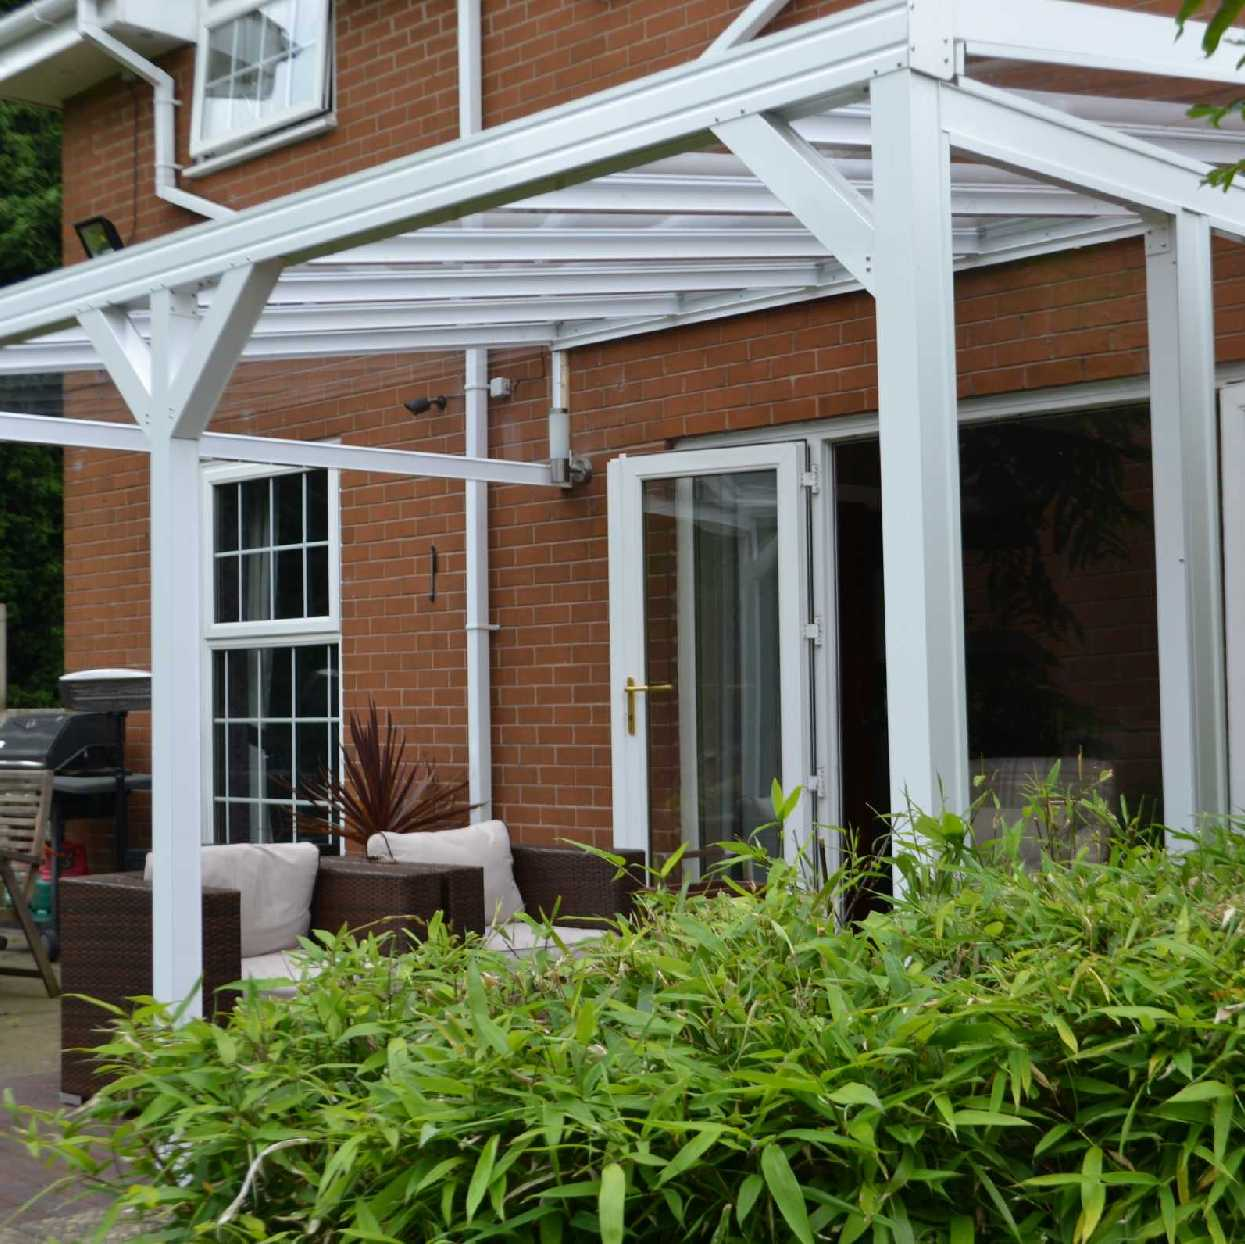 Omega Smart White Lean-To Canopy UNGLAZED for 6mm Glazing - 2.1m (W) x 2.5m (P), (2) Supporting Posts from Omega Build